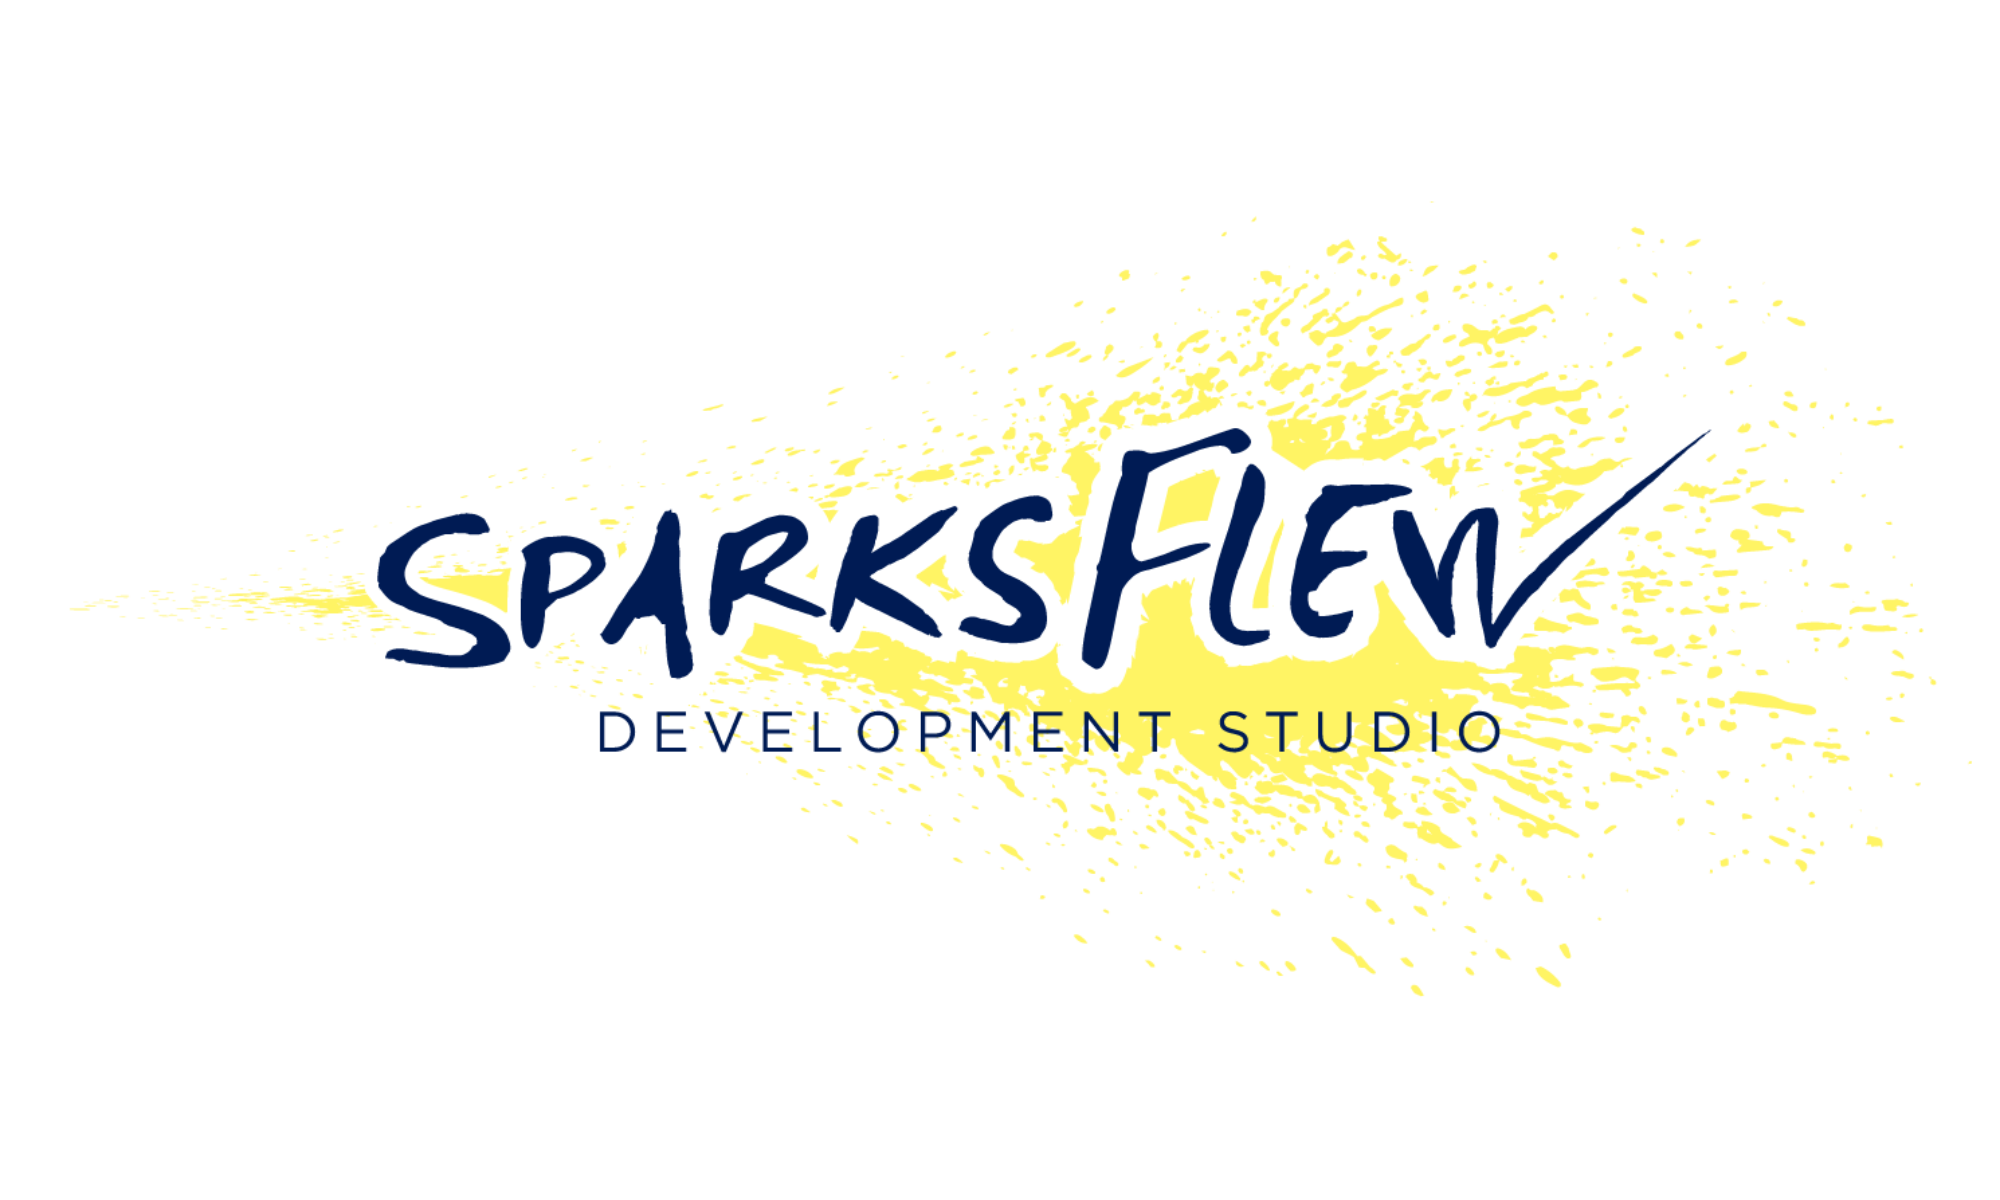 Sparks Flew Development Studio